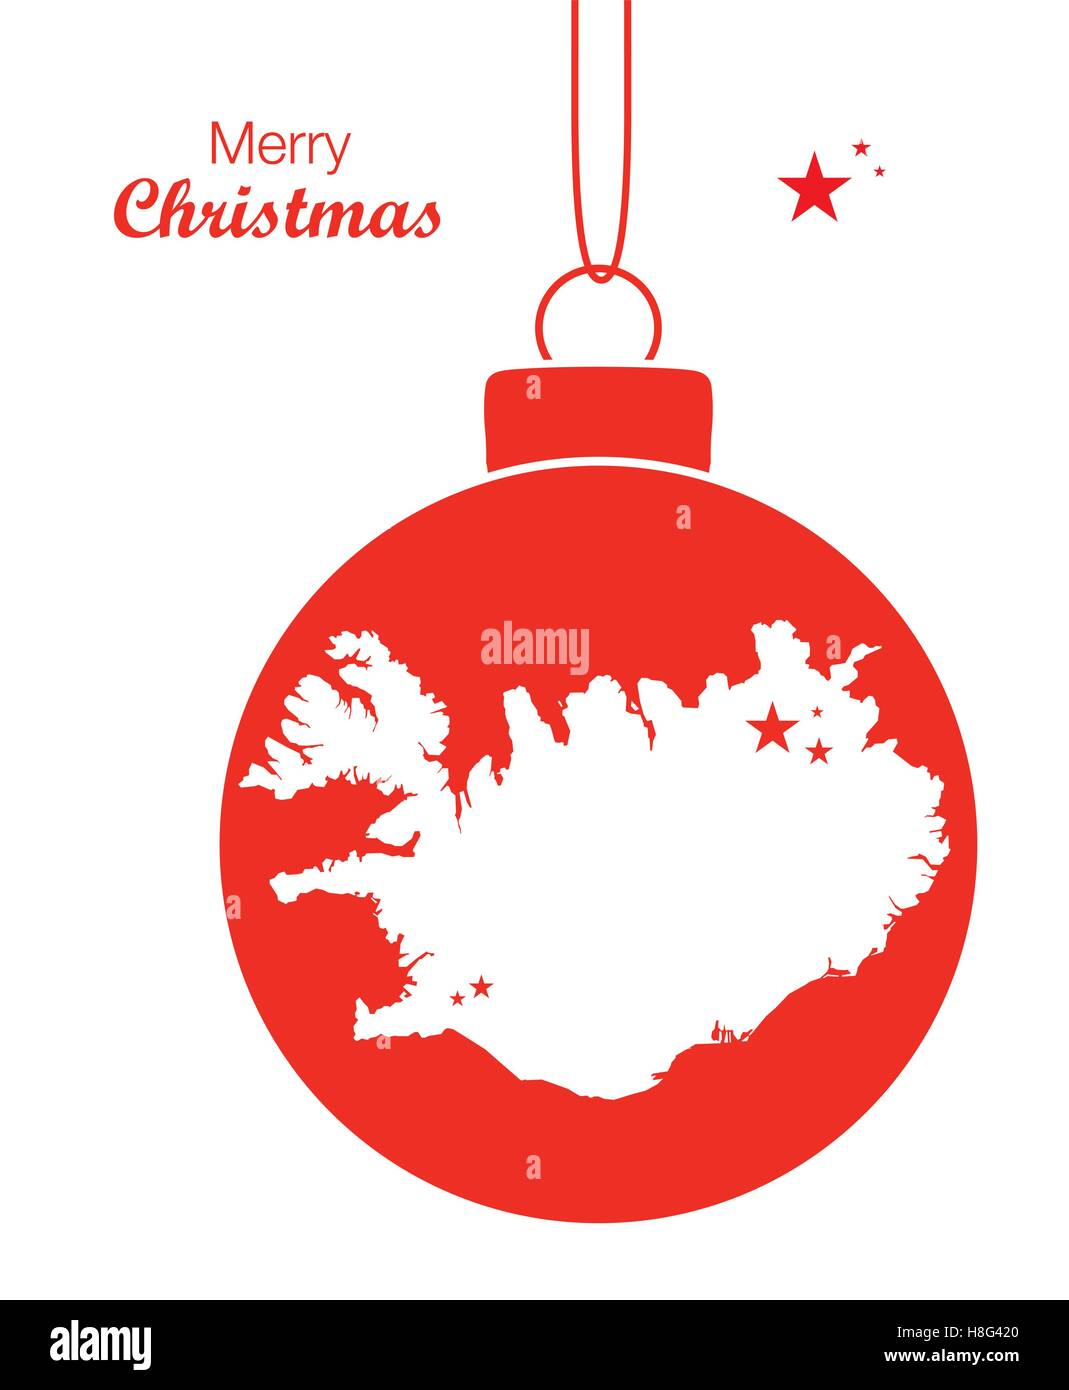 Merry Christmas Map Iceland Stock Vector Art & Illustration, Vector ...